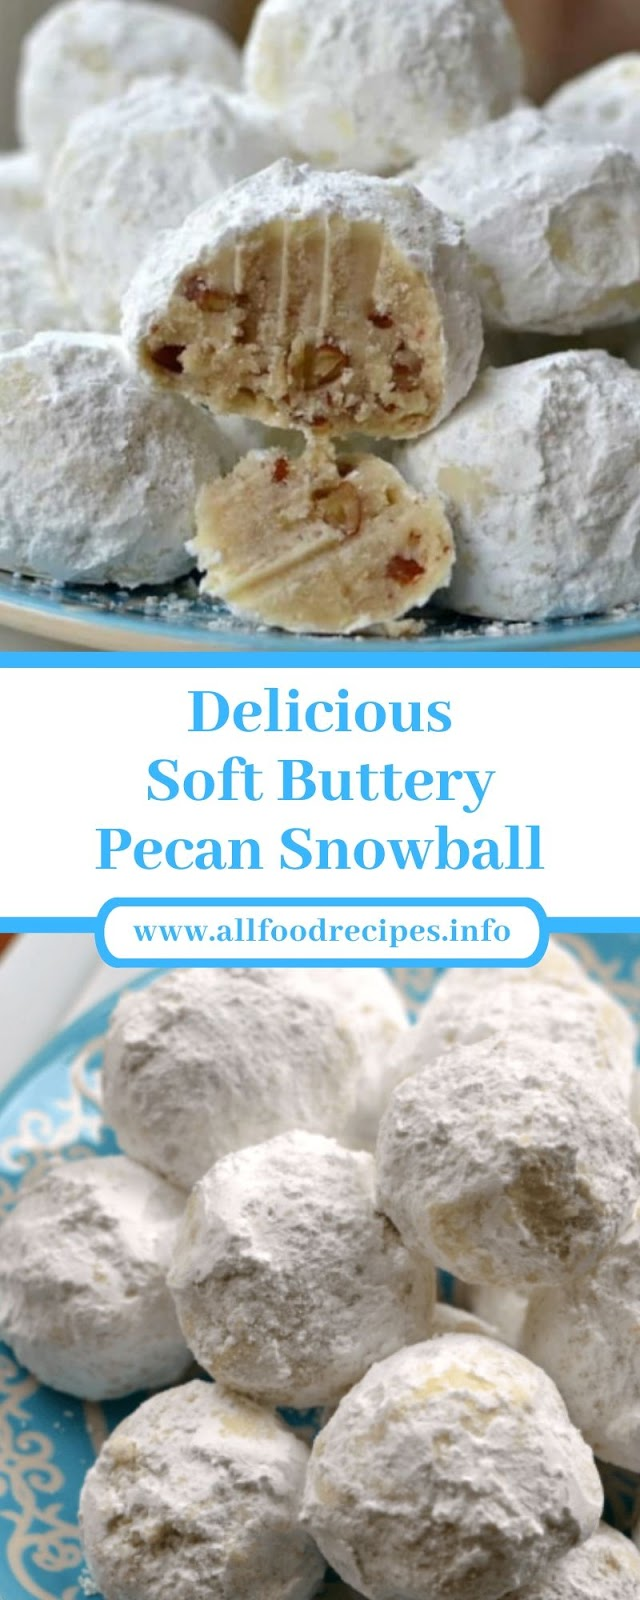 Delicious Soft Buttery Pecan Snowball